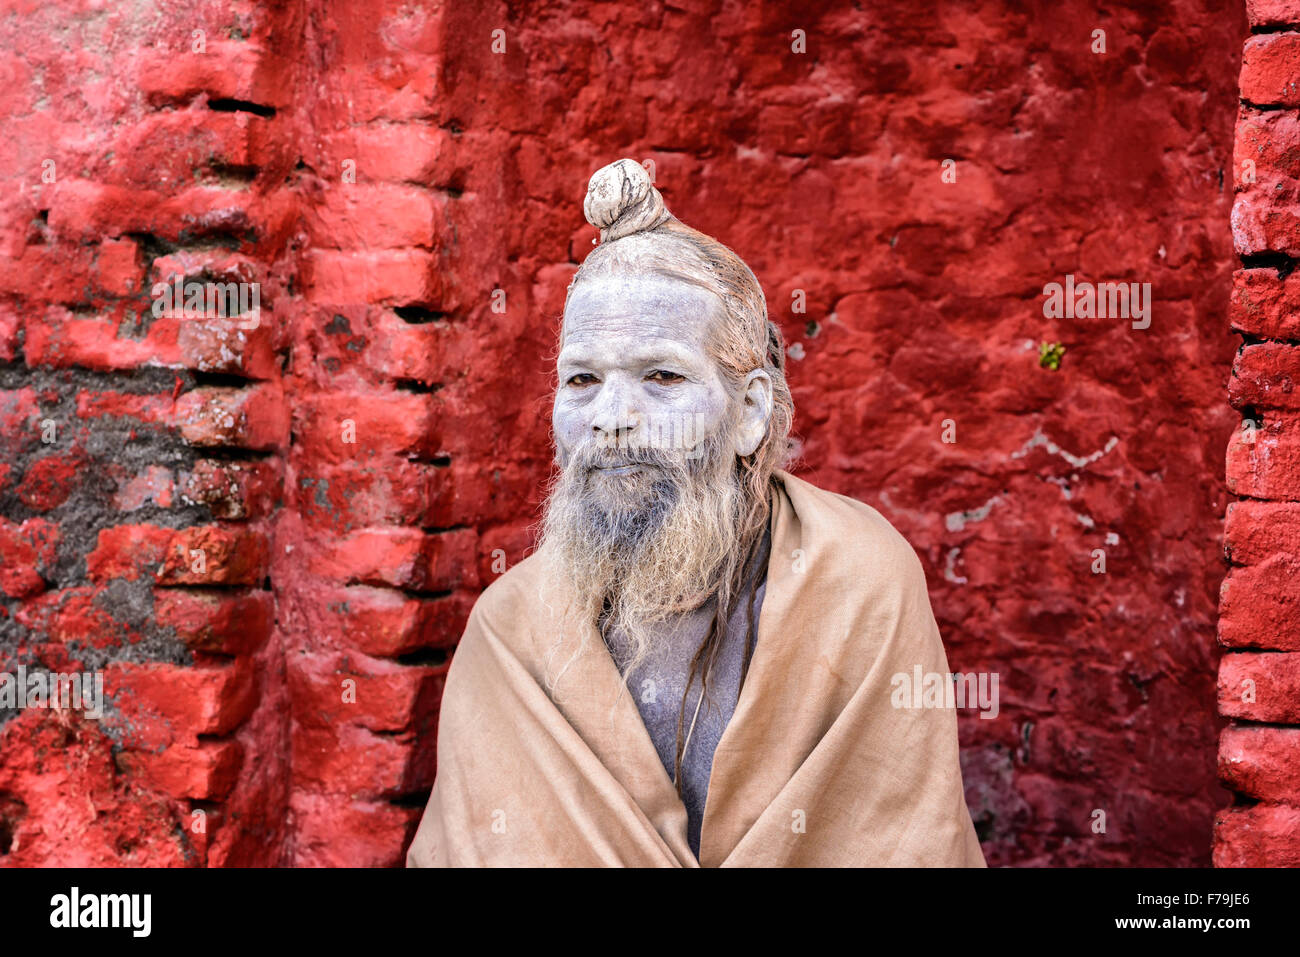 Wandering  Shaiva sadhu (holy man) with traditional face painting in ancient Pashupatinath Temple Stock Photo